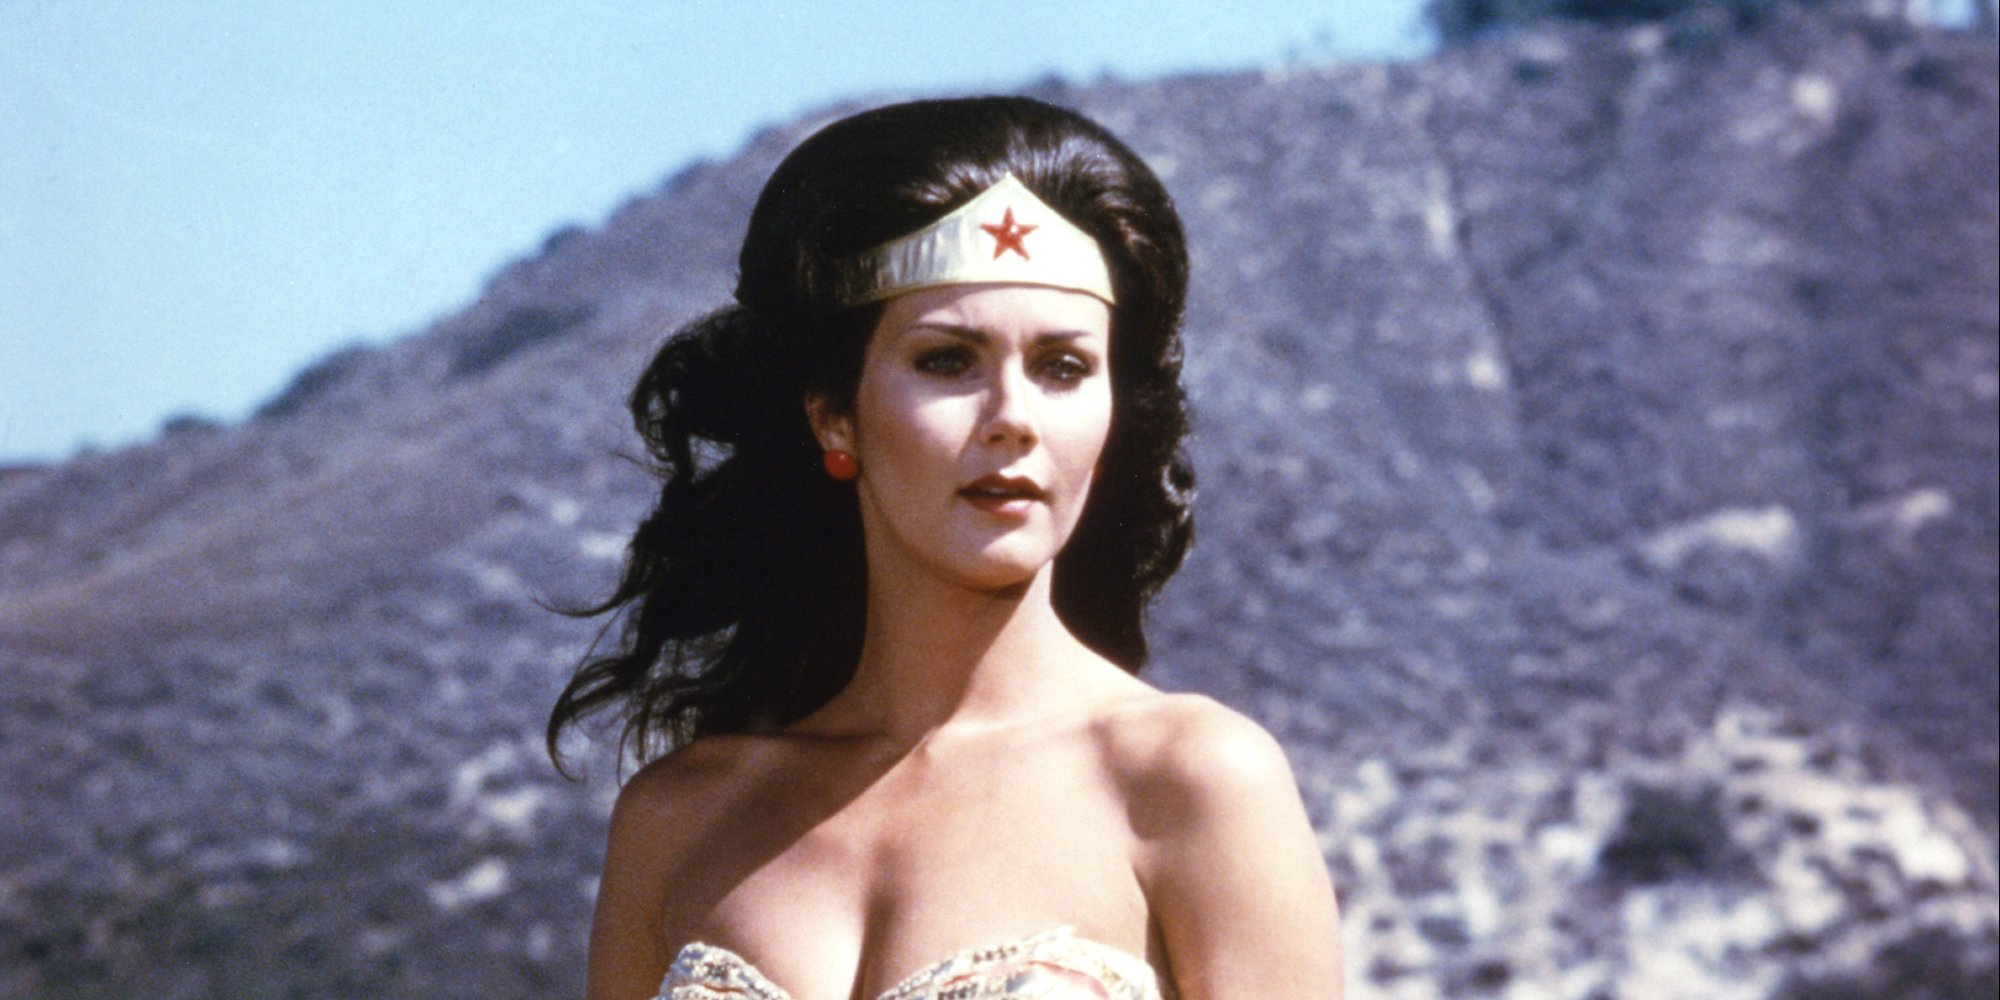 Watch The Original 'Wonder Woman' This Christmas